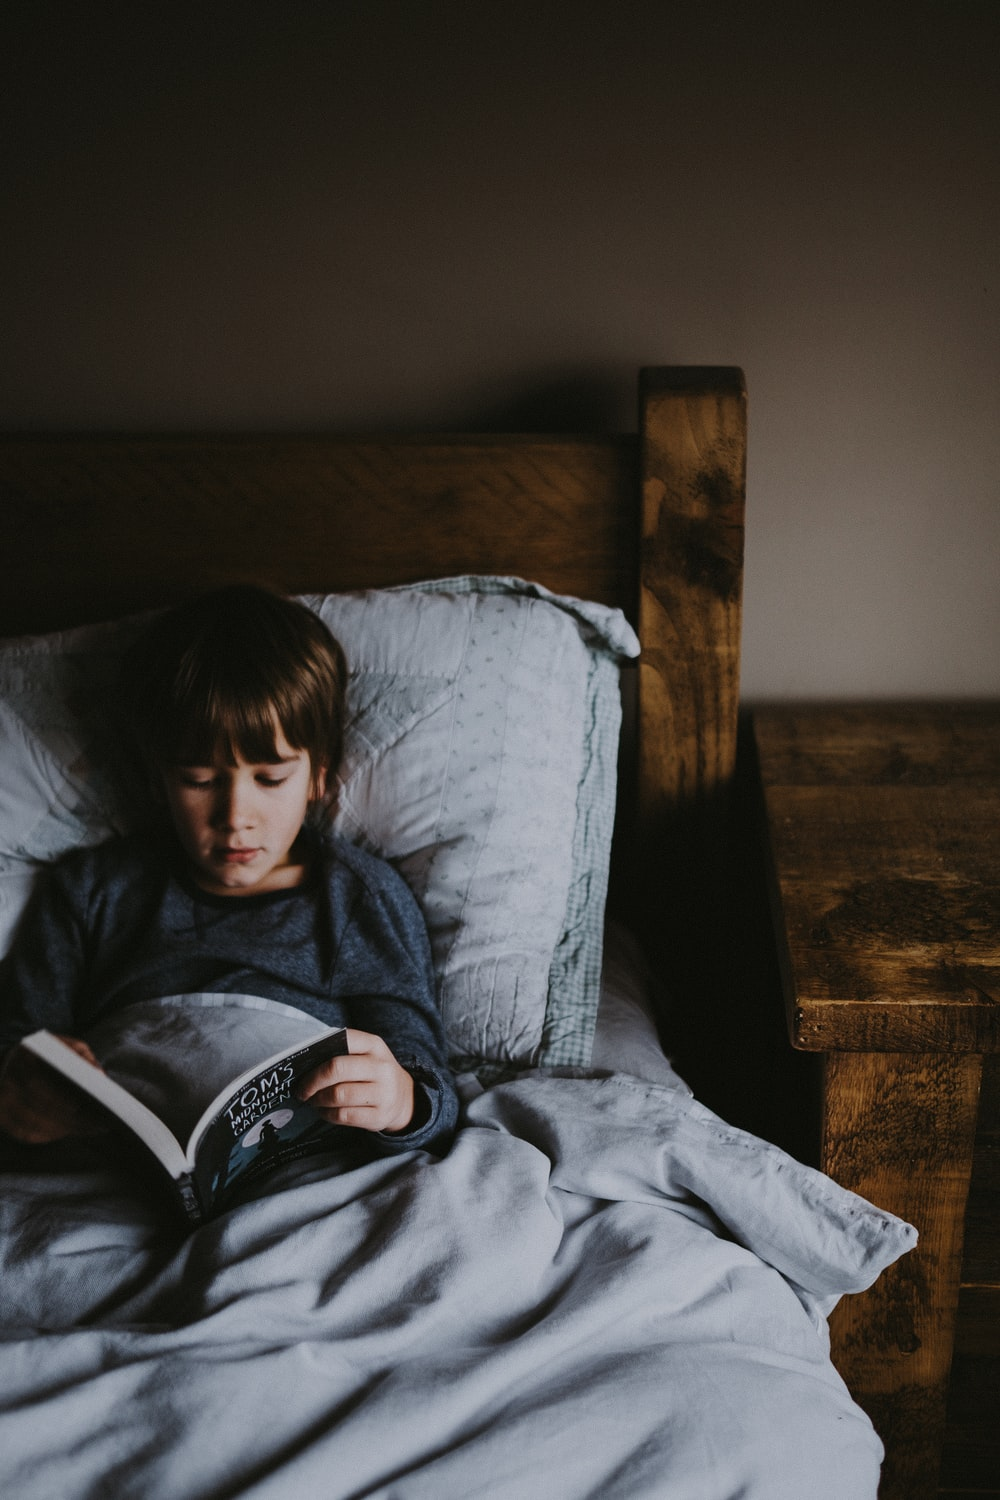 boy reading Tom's book on bed